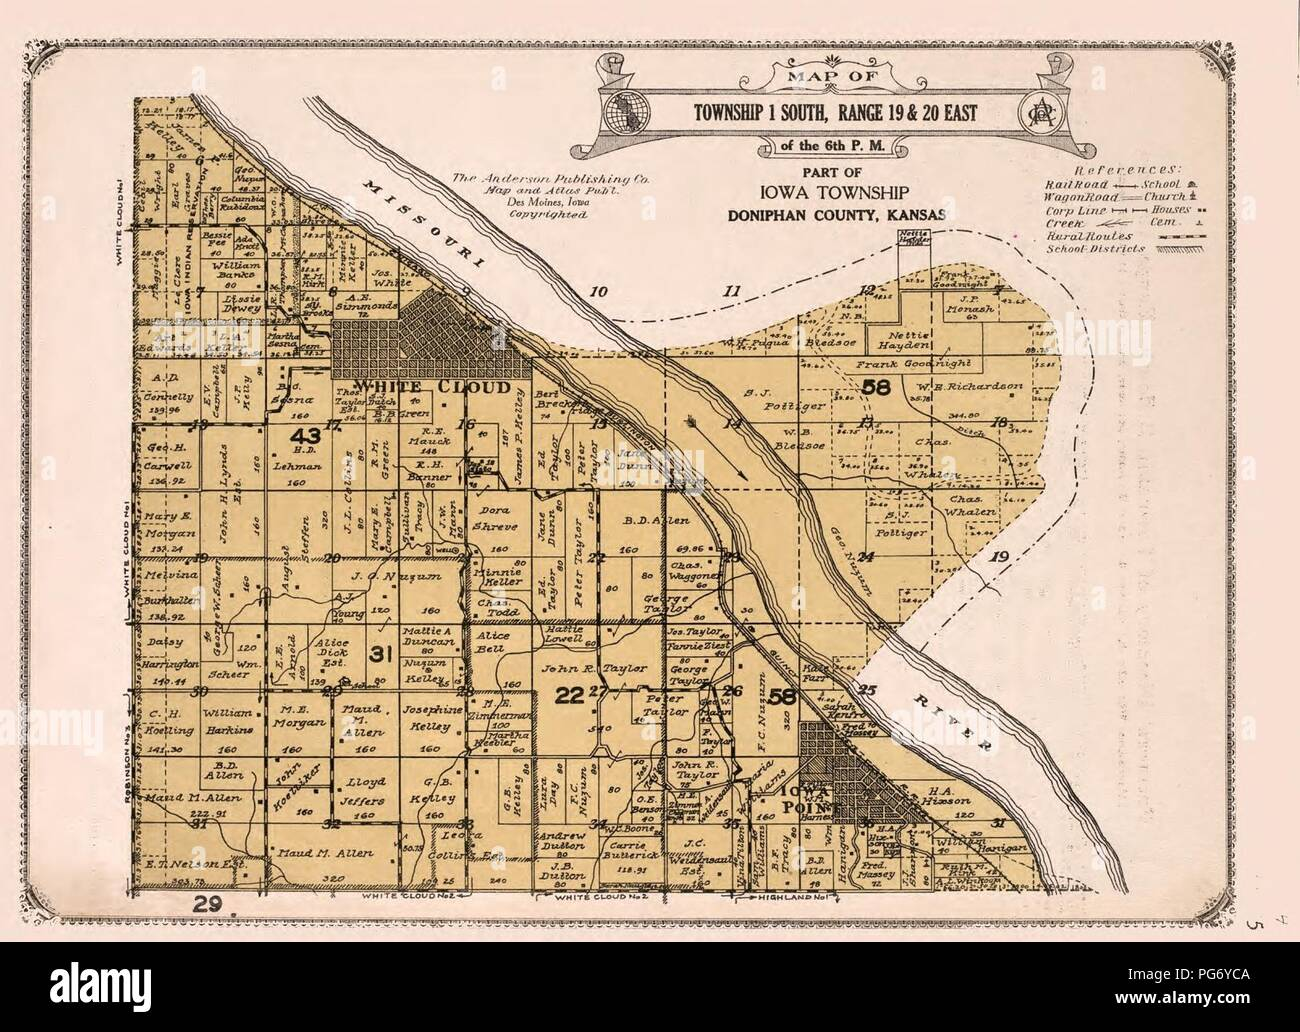 Atlas of Doniphan County, Kansas - containing maps of townships of on www.kansas map, kansas indians map, kansas wind map, kansas with capital, kansas dot maps, kansas map with cities only, st. marys kansas map, kansas shape map, cimarron kansas map, kansas cities population, kansas in us, kansas name, kansas info, kansas road map, kansas highway map pdf, kansas state on map, kansas wall map, kansas state physical map, kansas small town map, the kansas map,